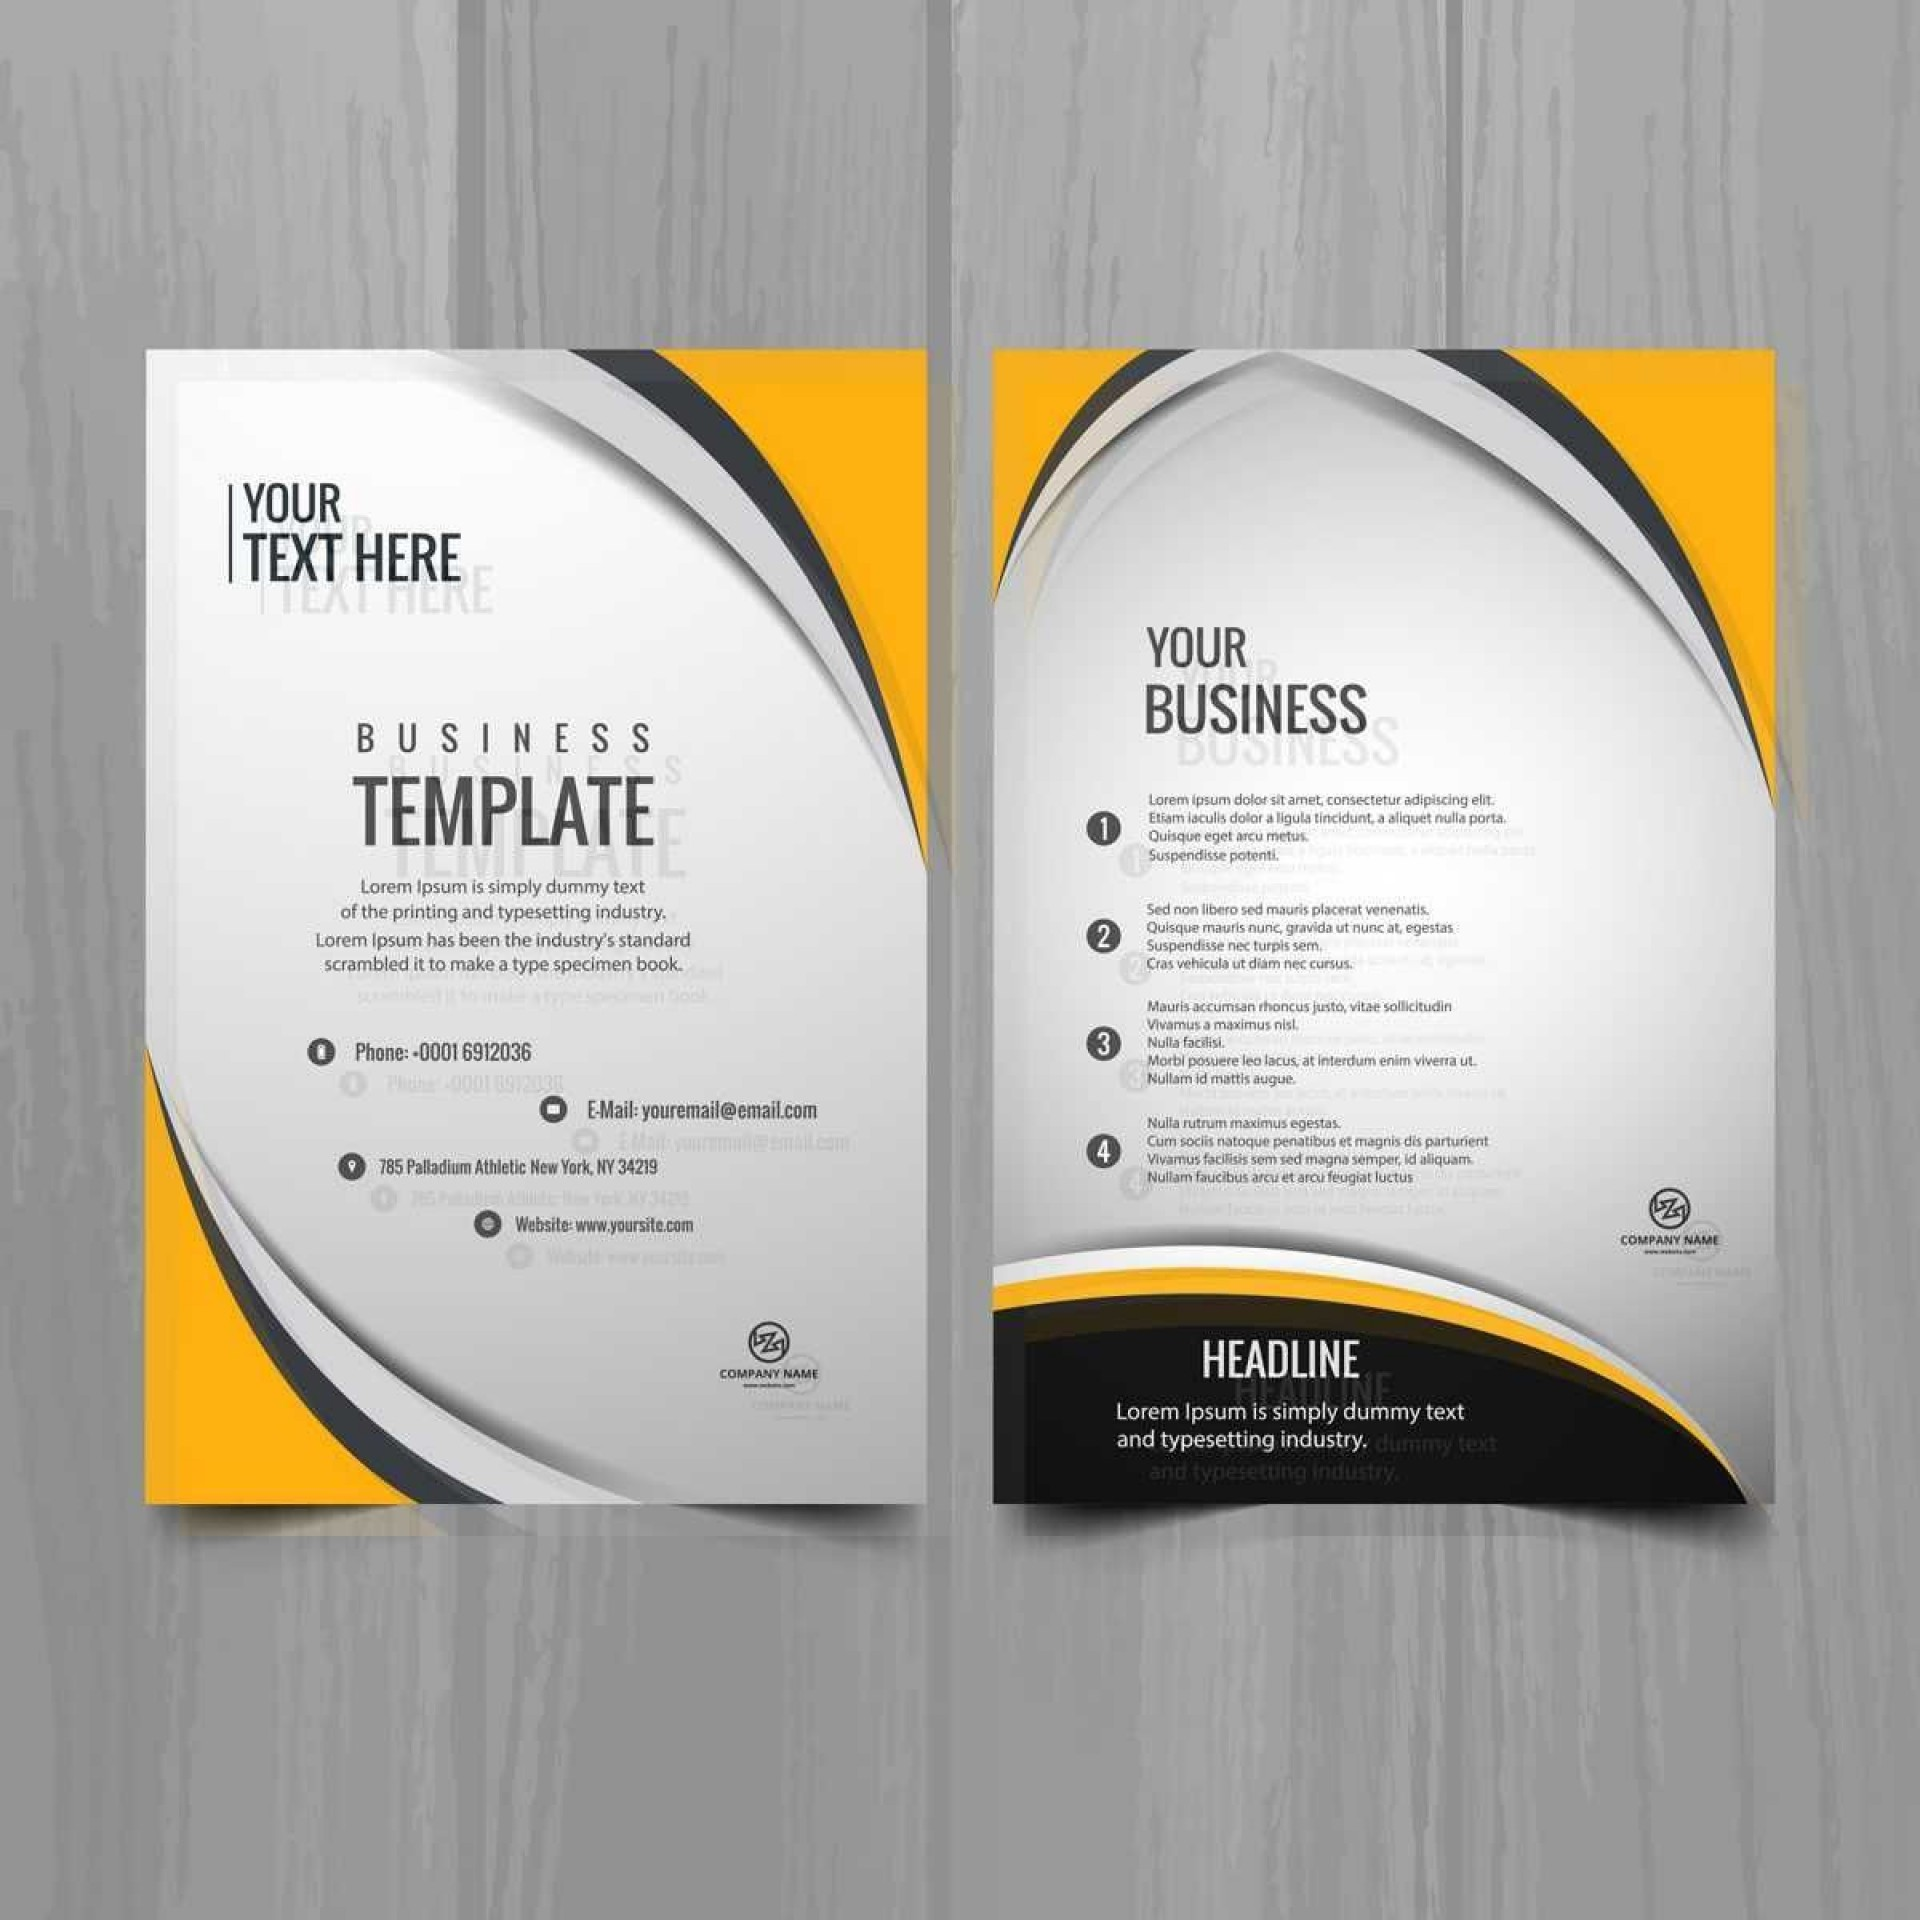 000 Marvelou Busines Brochure Design Template Free Download Sample 1920